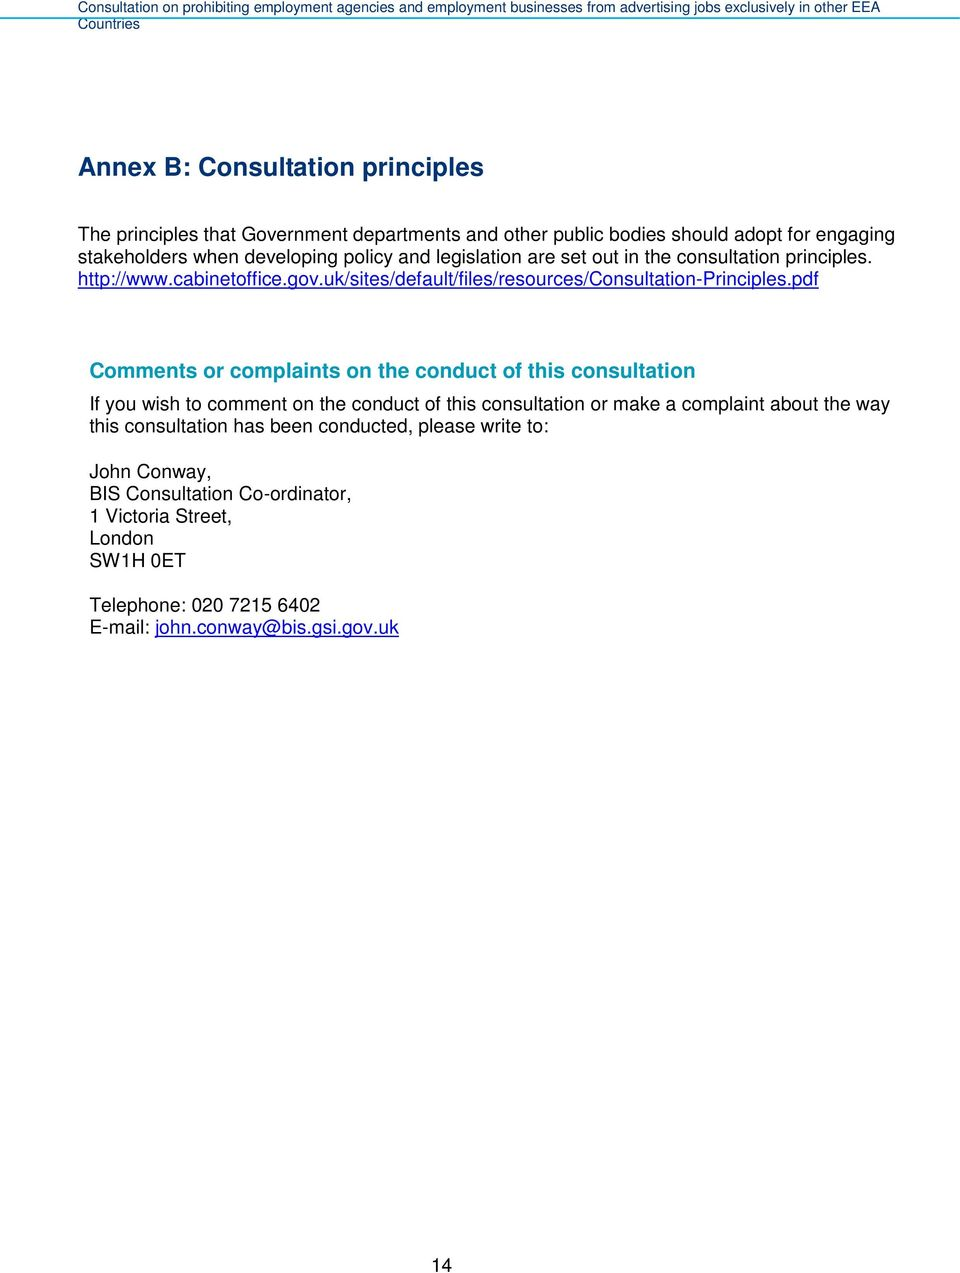 pdf Comments or complaints on the conduct of this consultation If you wish to comment on the conduct of this consultation or make a complaint about the way this